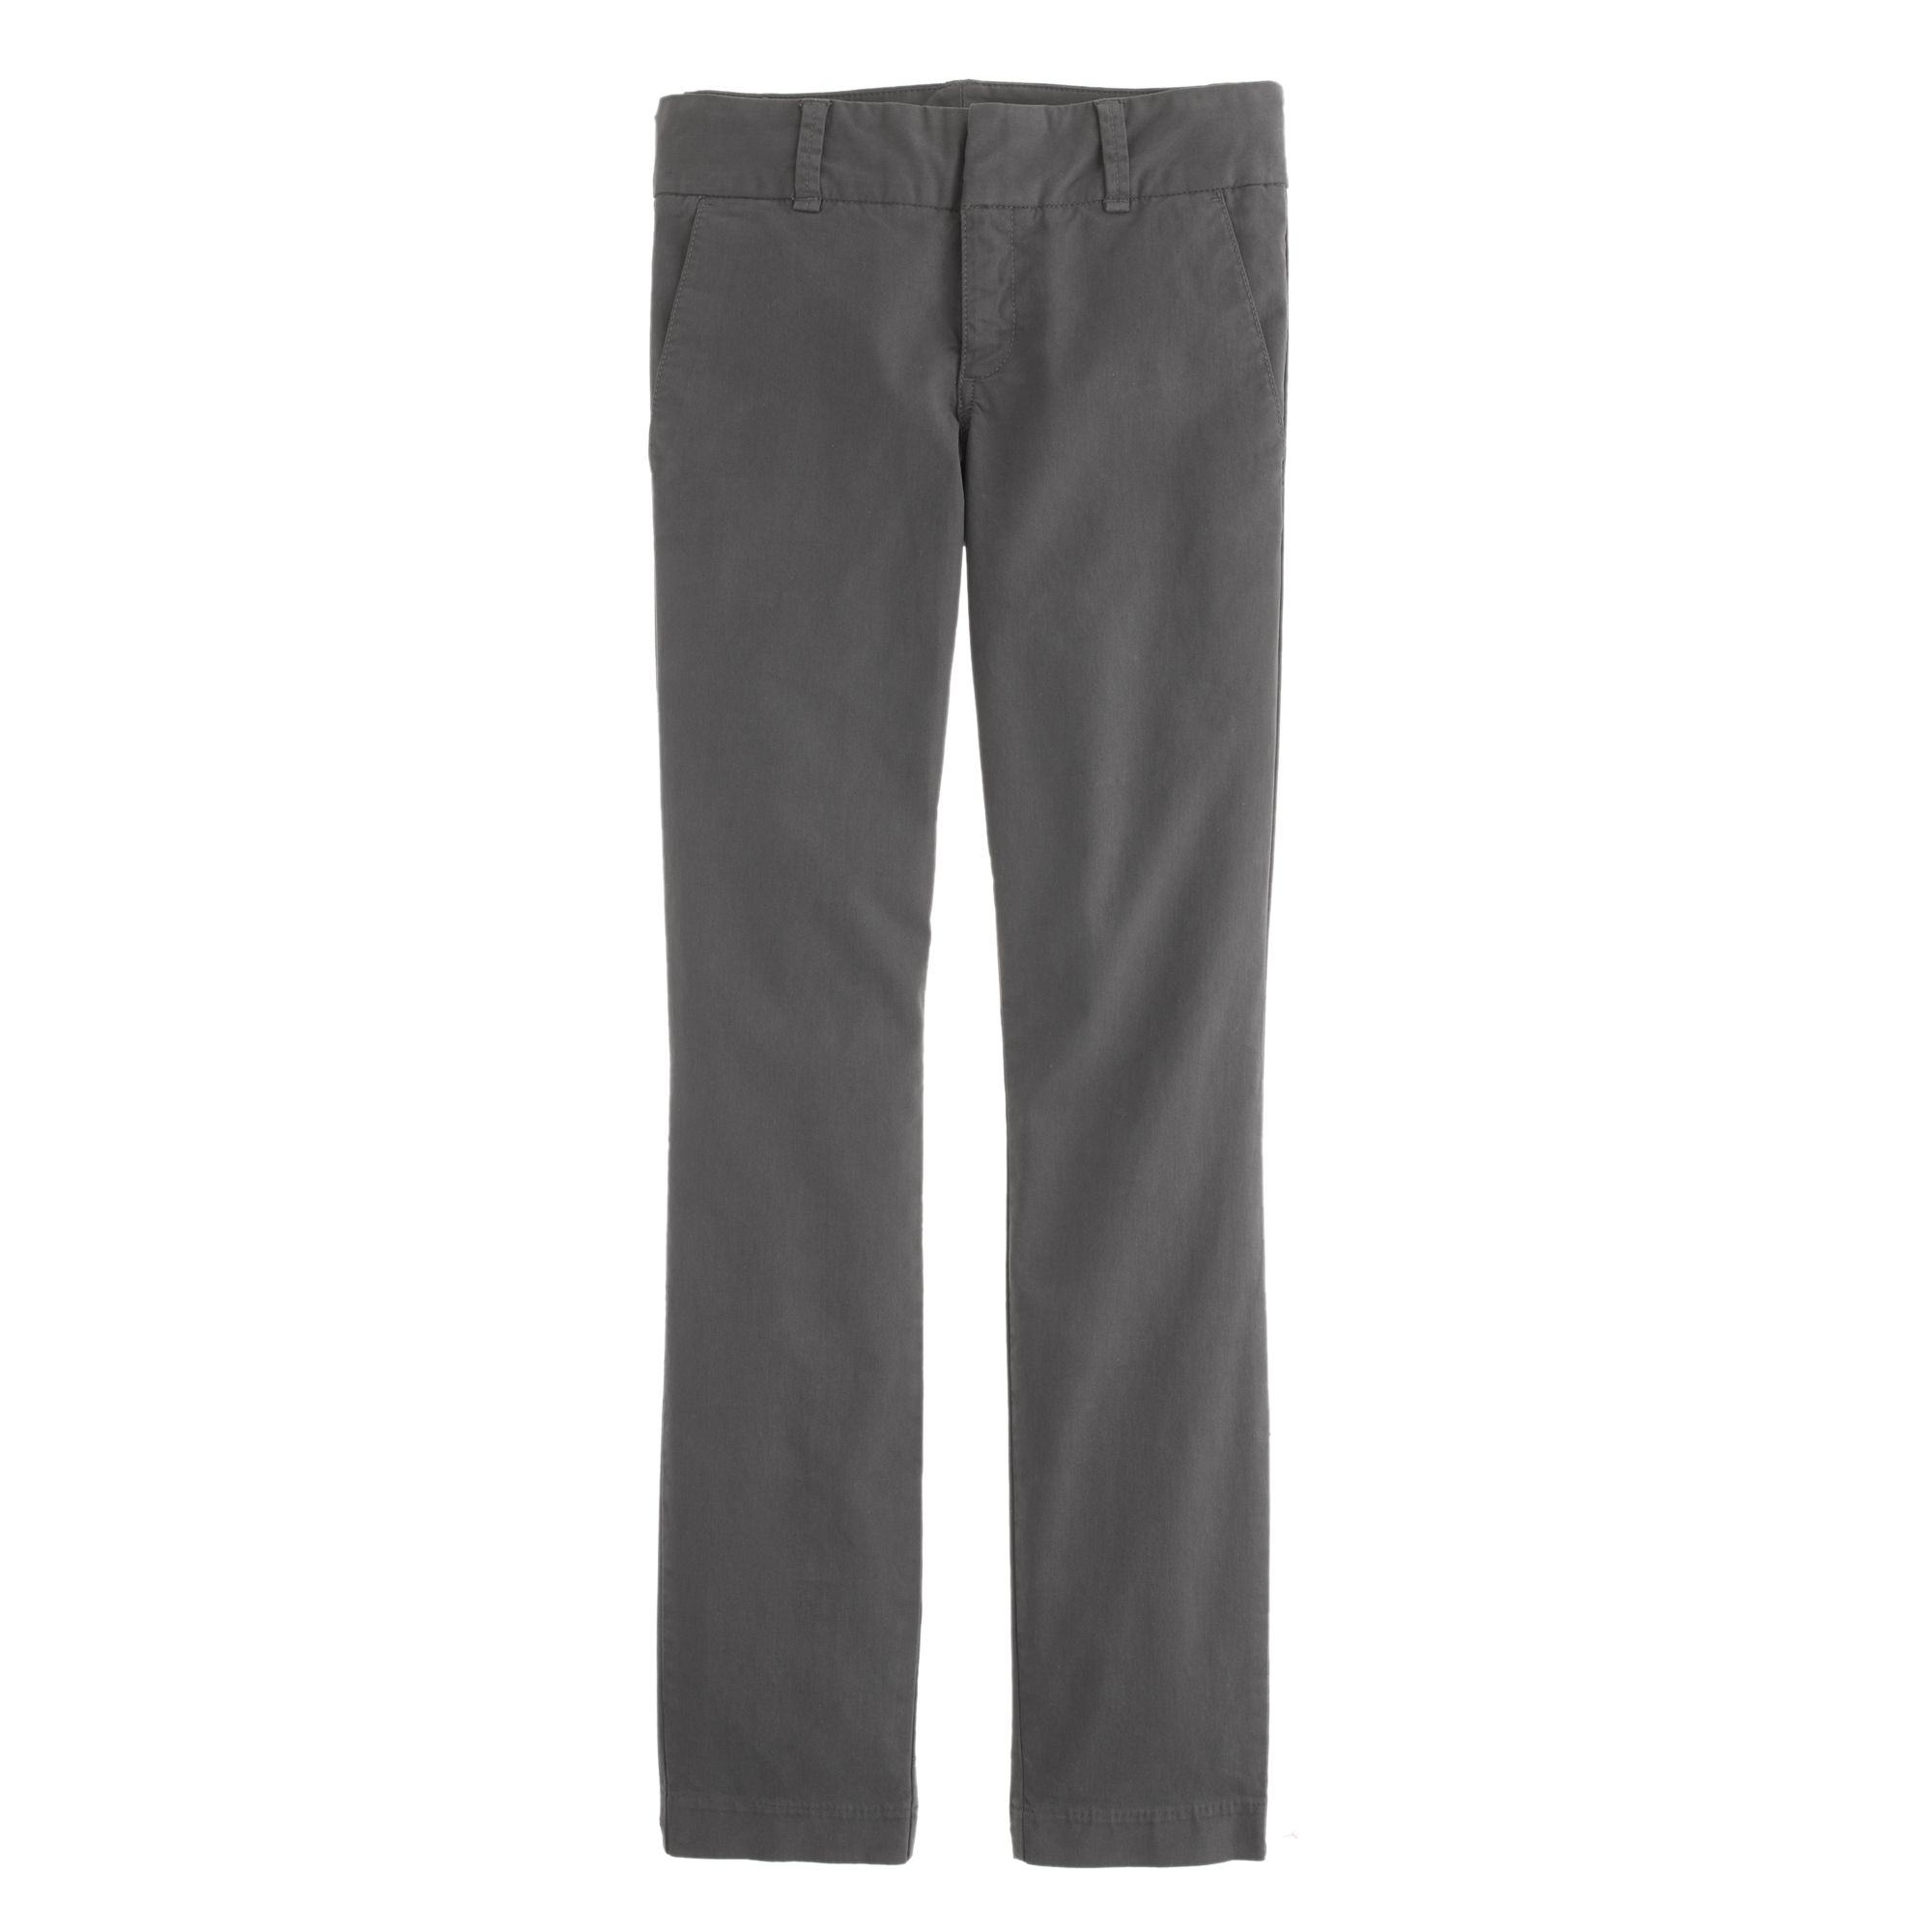 Popular Ideas About Chinos Women On Pinterest  Navy Blue Pants Navy Pants